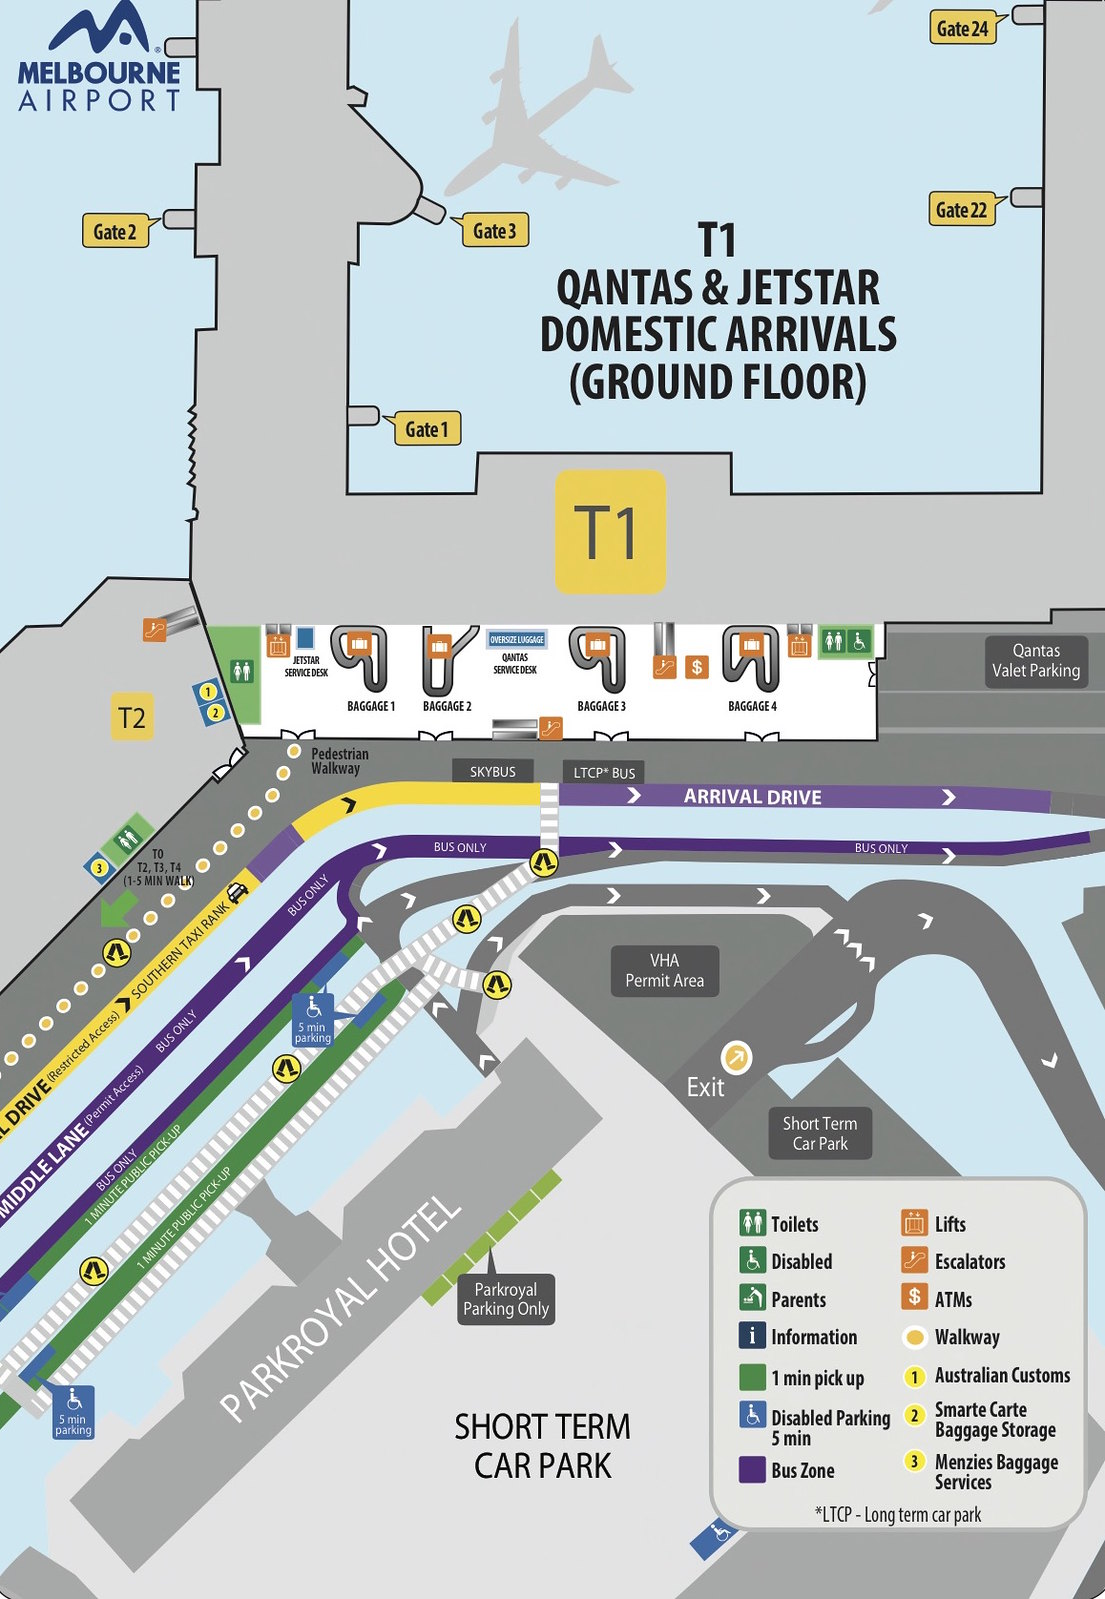 ①T1 QANTAS & JETSTAR DOMESTIC ARRIVALS (GROUND FLOOR)